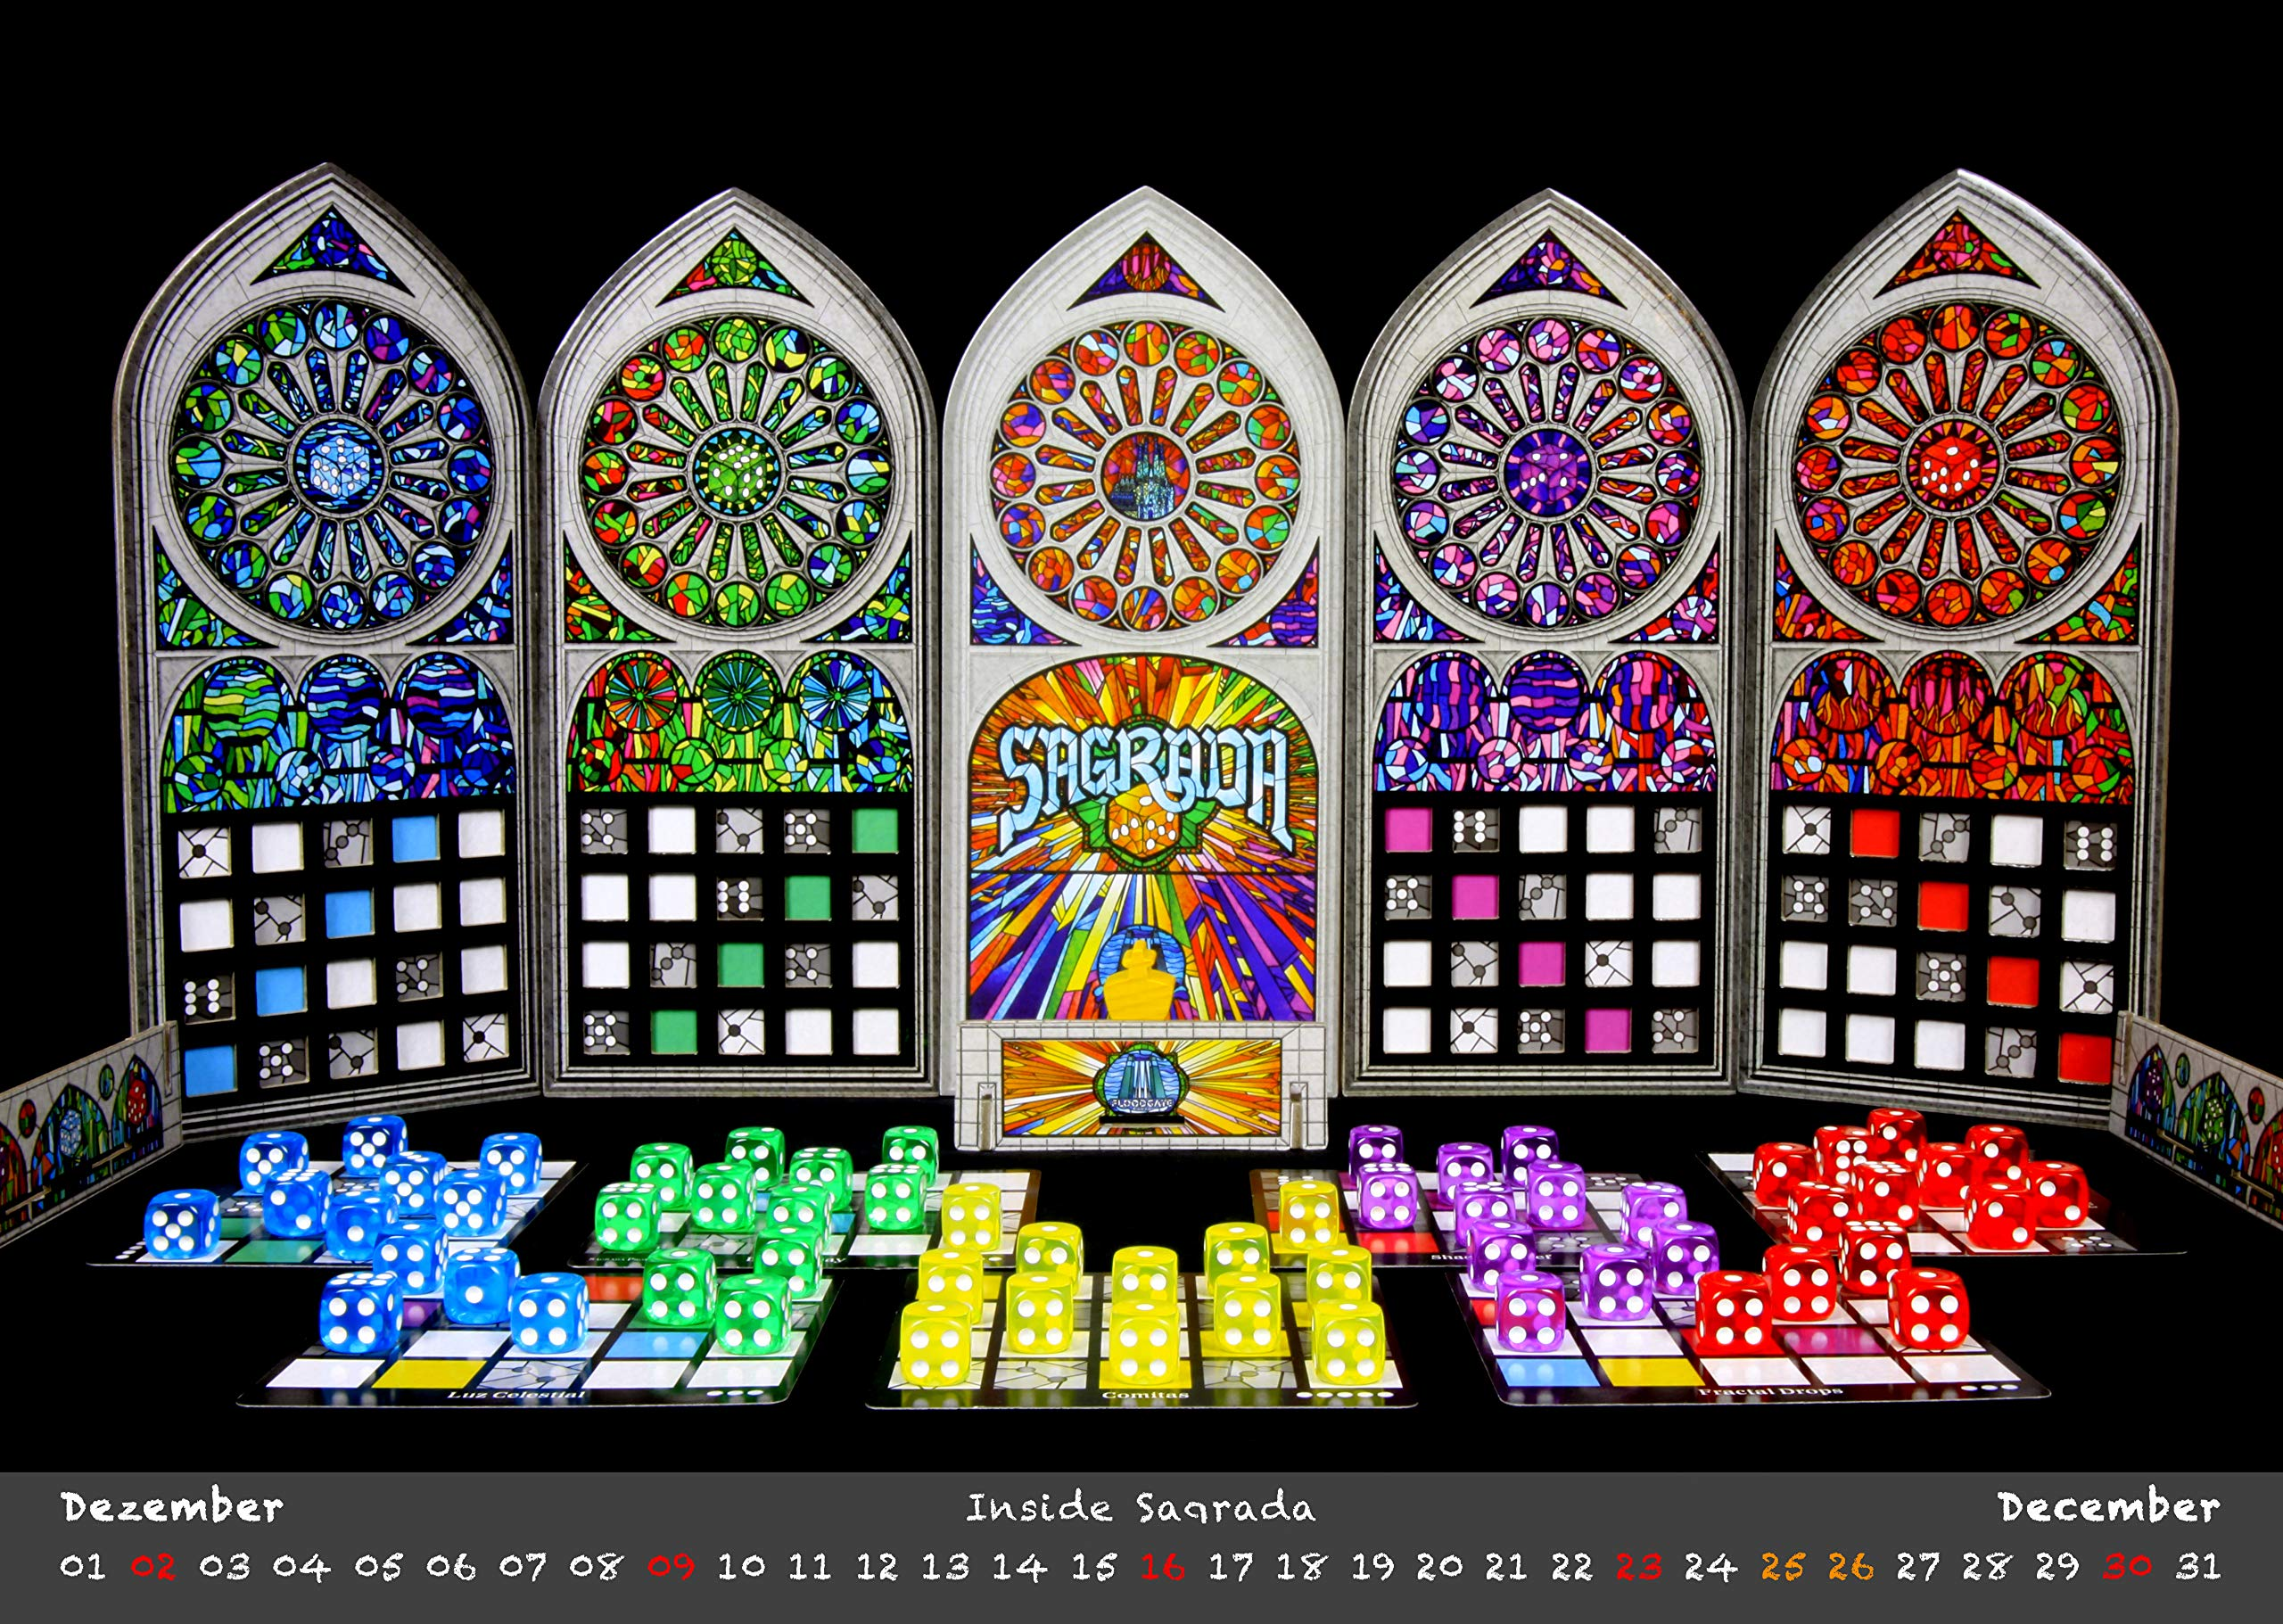 Sagrada Board Game - Family or Adult Strategy Game for 1 to 4 Players giá  tốt nhất 2020 | FPT Shop